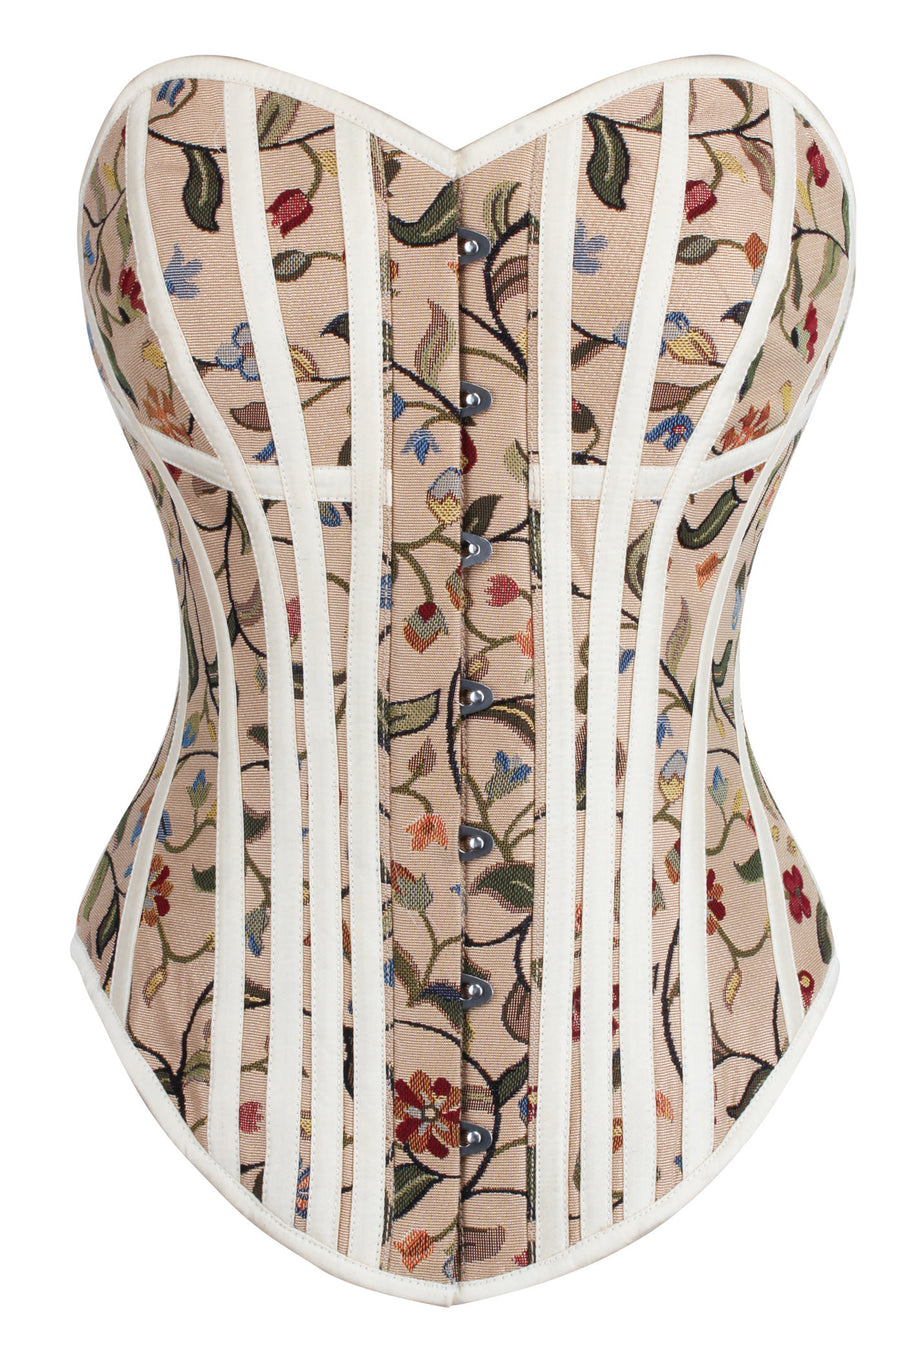 Historically Inspired Floral Print Overbust Corset